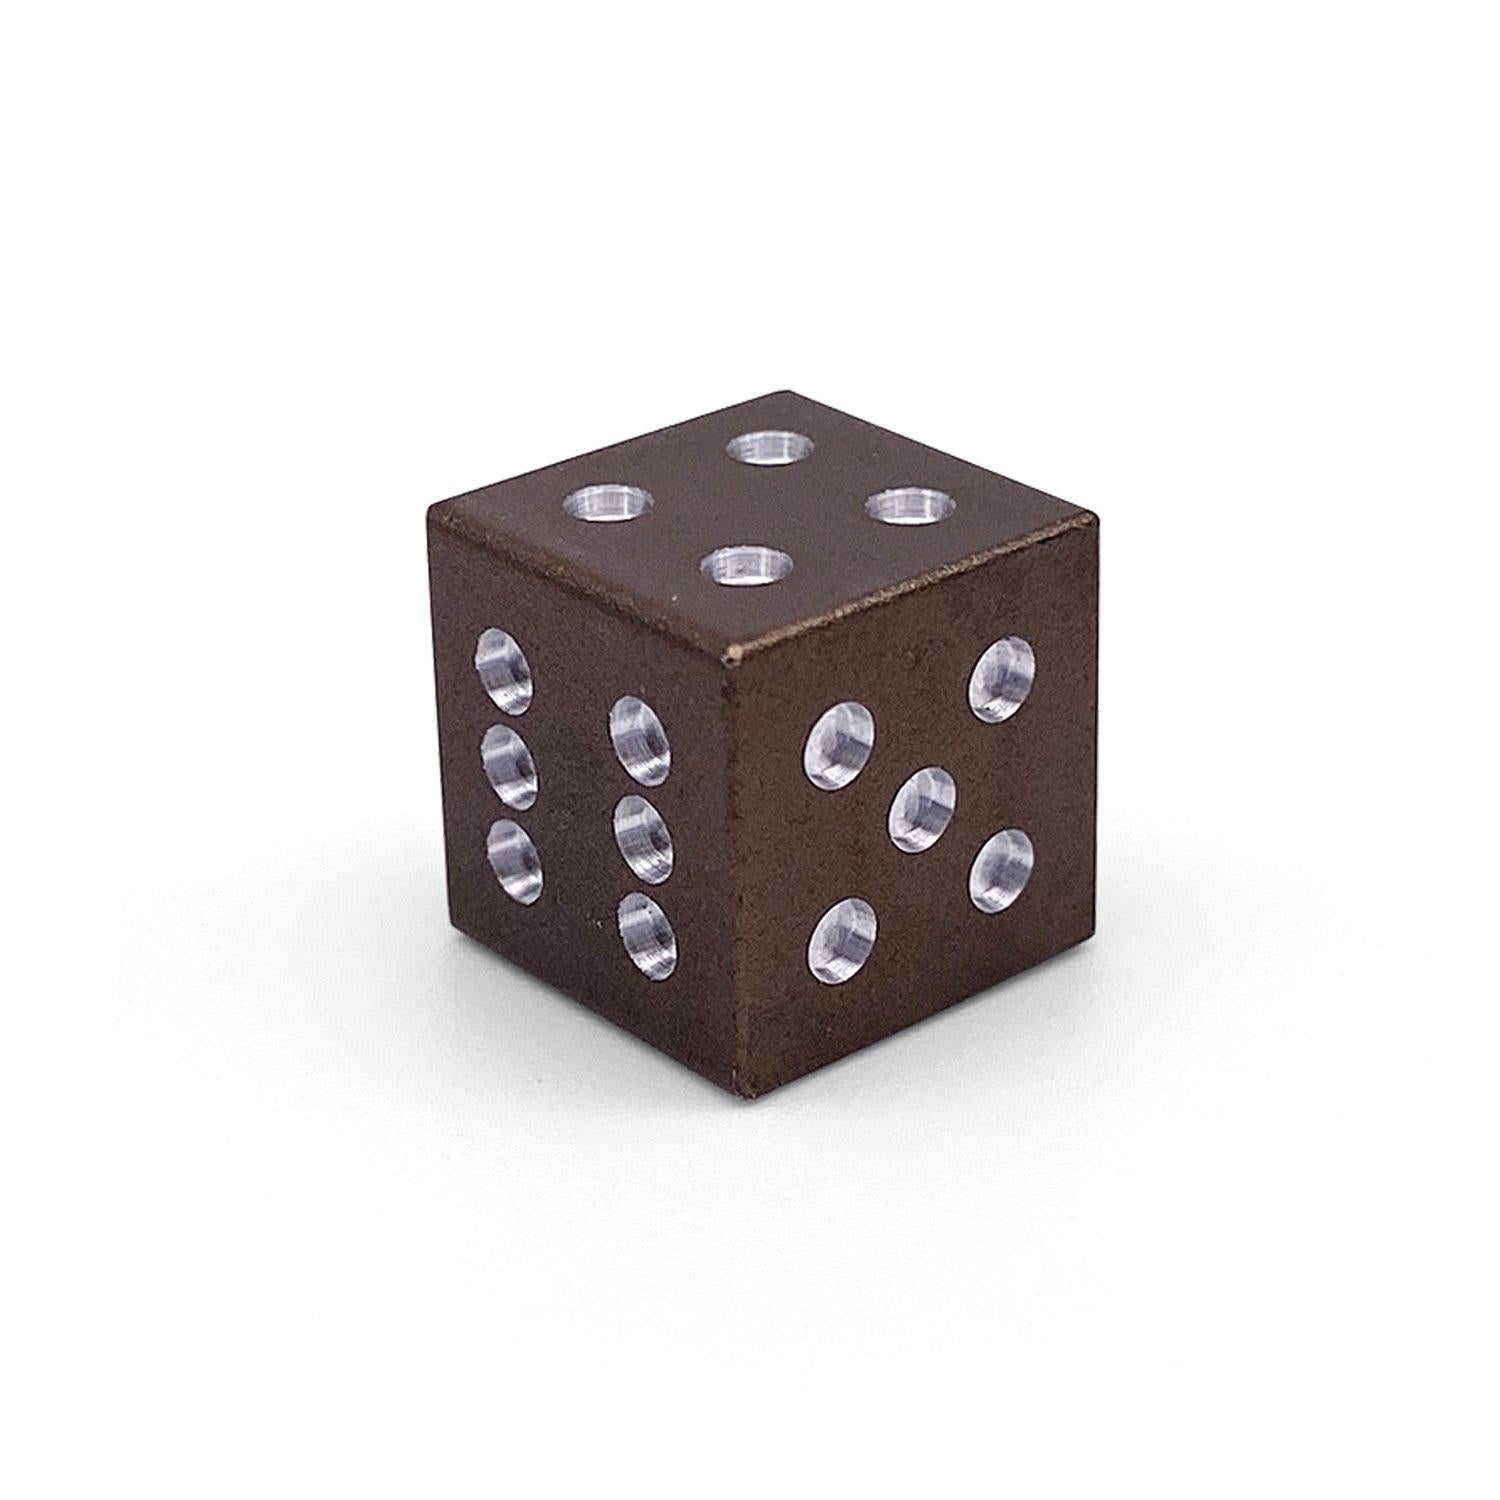 Single Aluminum D6 Mini - Straight Edges - Leather Brown